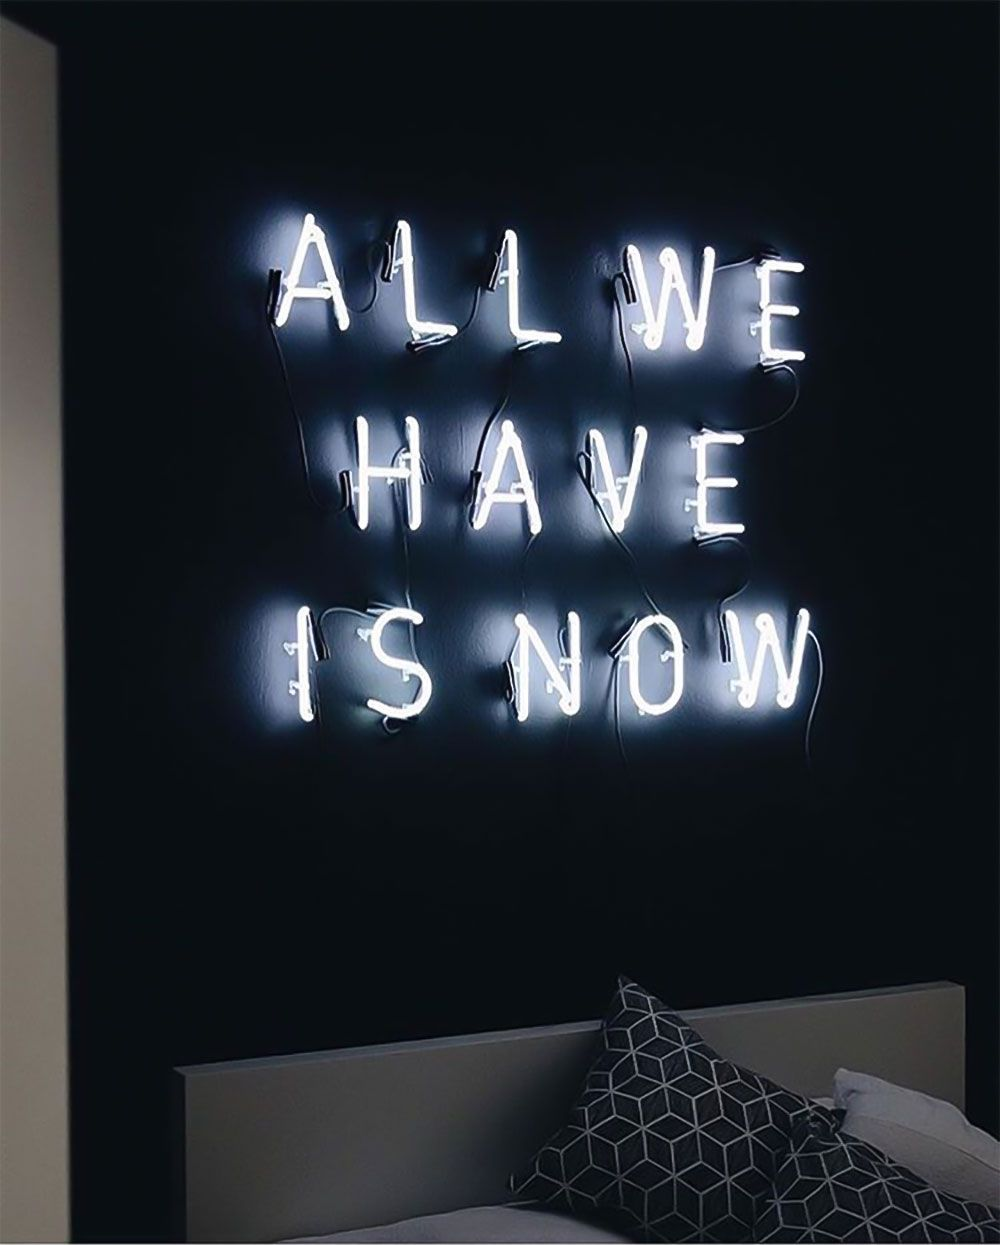 Aesthetic Grunge Neon Signs Wallpapers Top Free Aesthetic Grunge